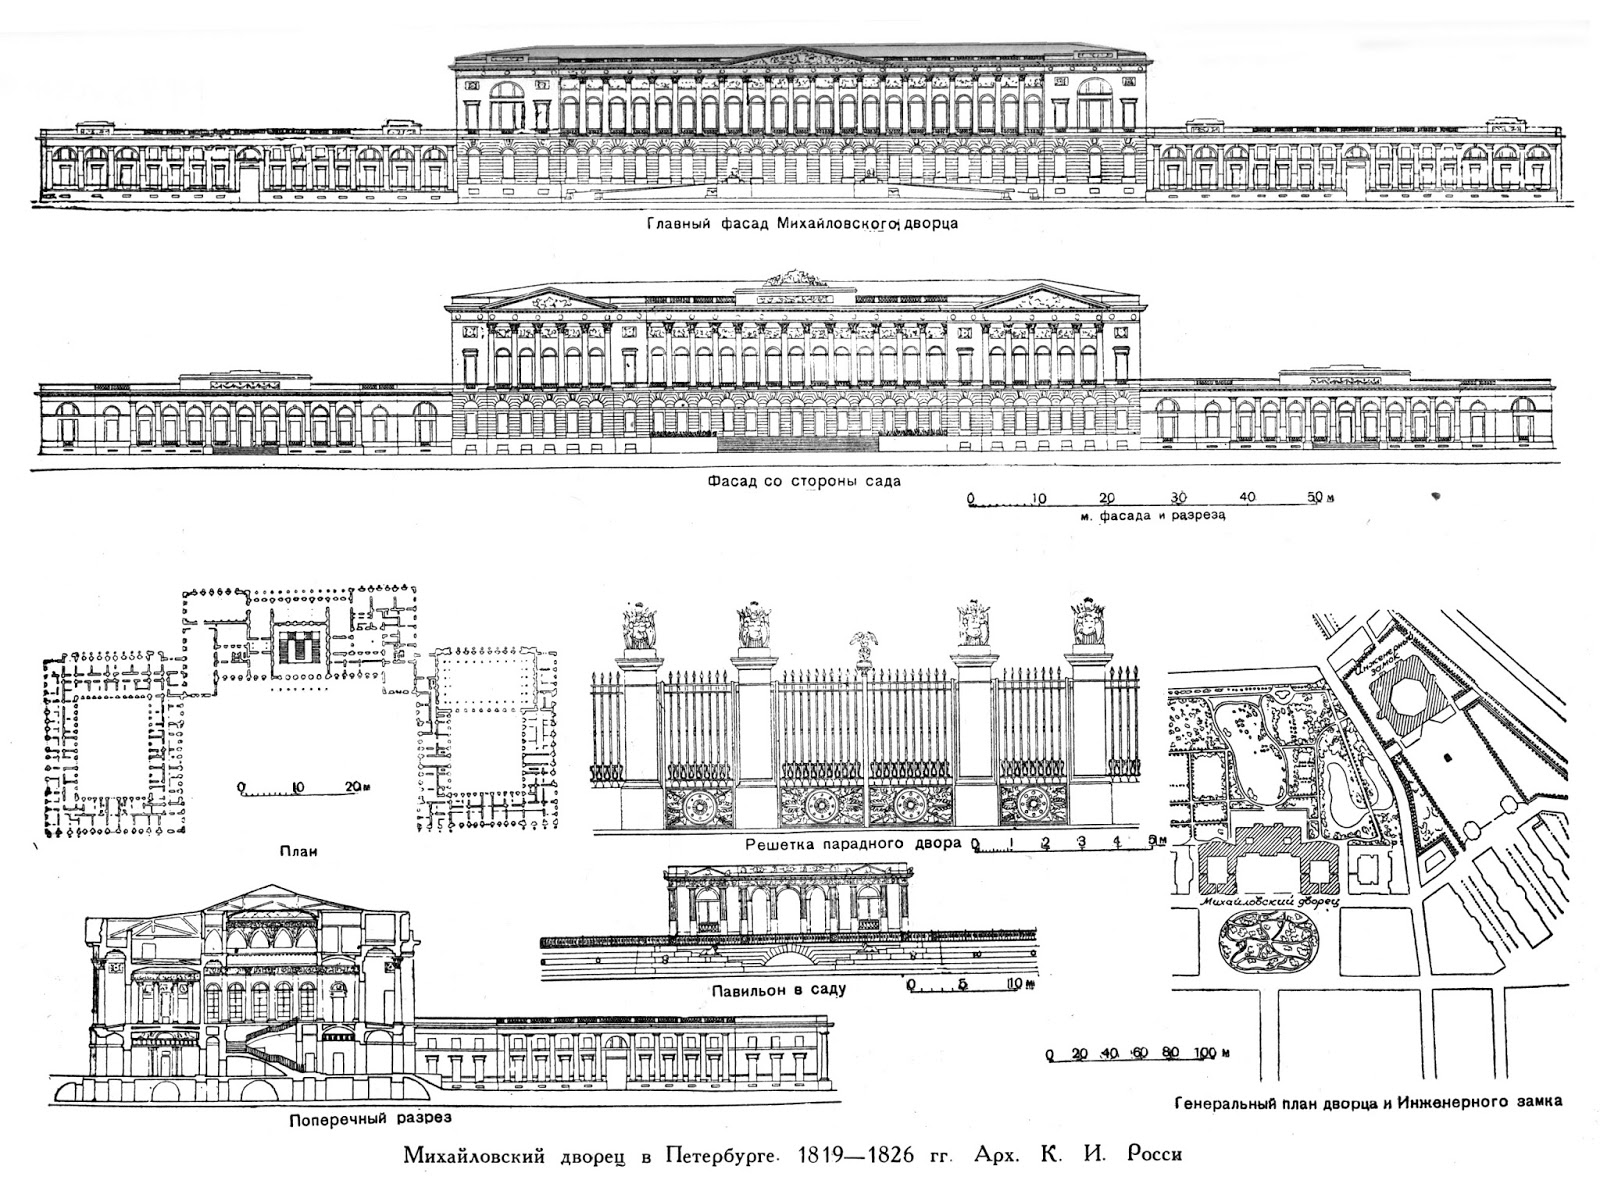 Architectural Drawings Of Mikhailovsky likewise Adm in addition Palace House Plans as well Palace Floor Plan besides Palace Floor Plan. on catherine palace floor plan